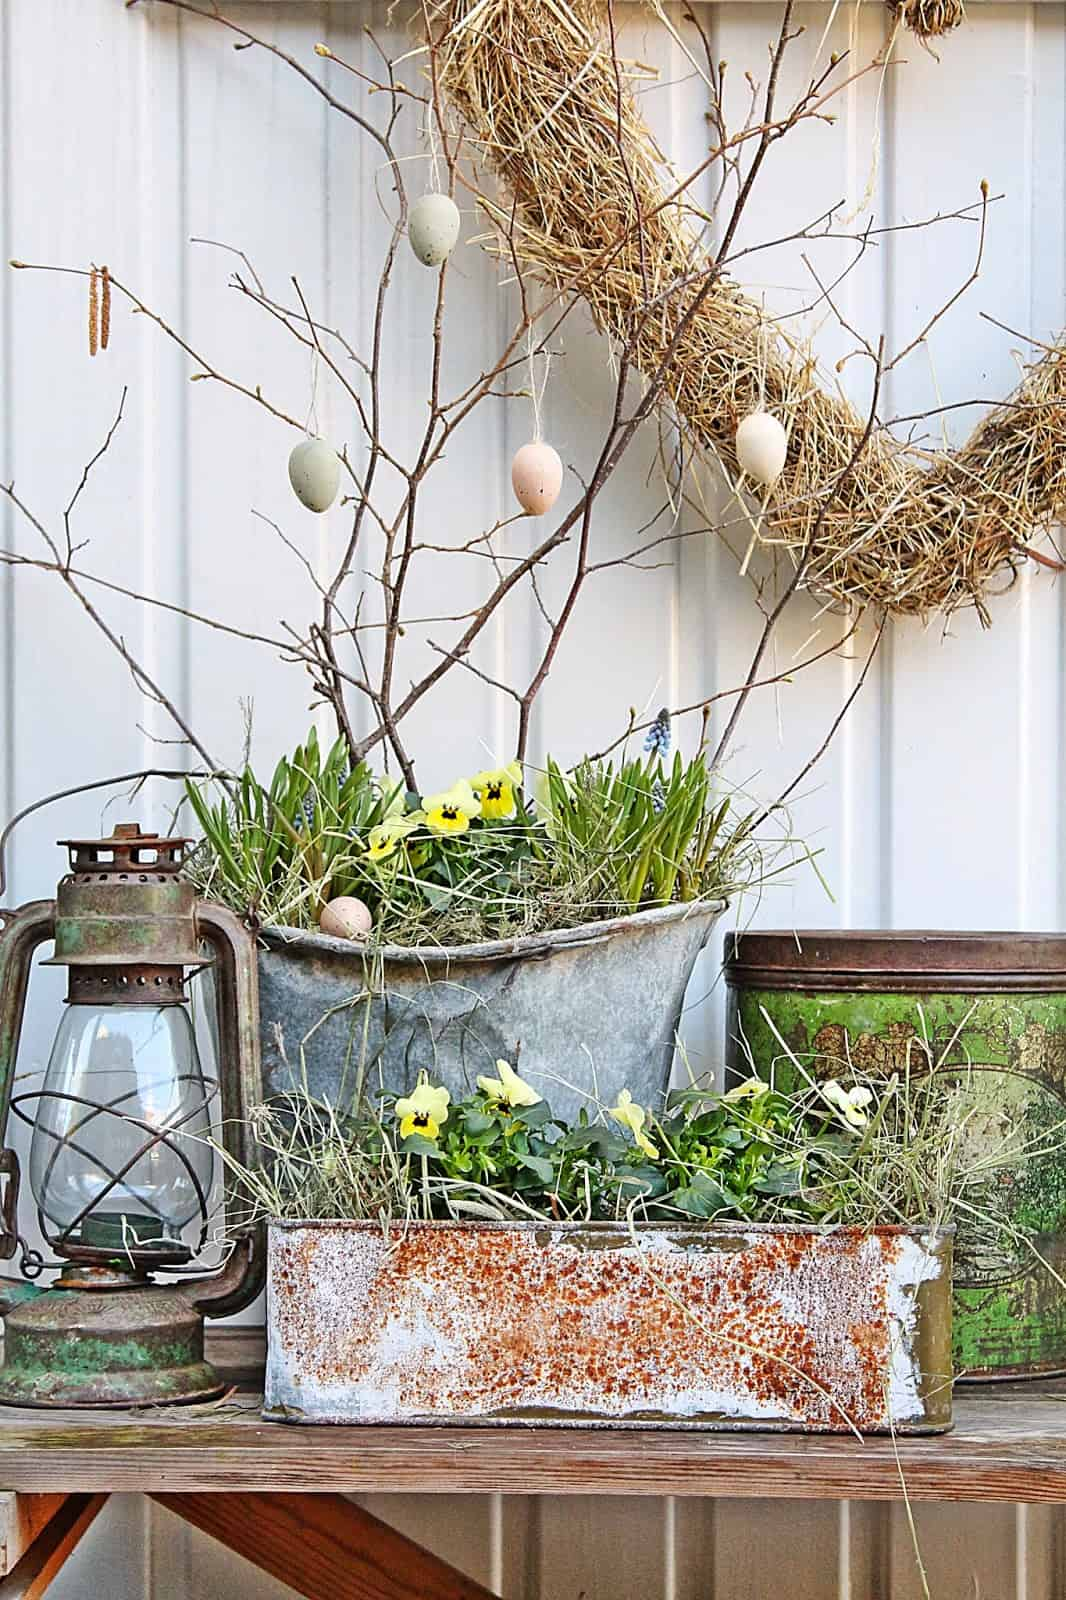 4. prepare your front porch for Easter